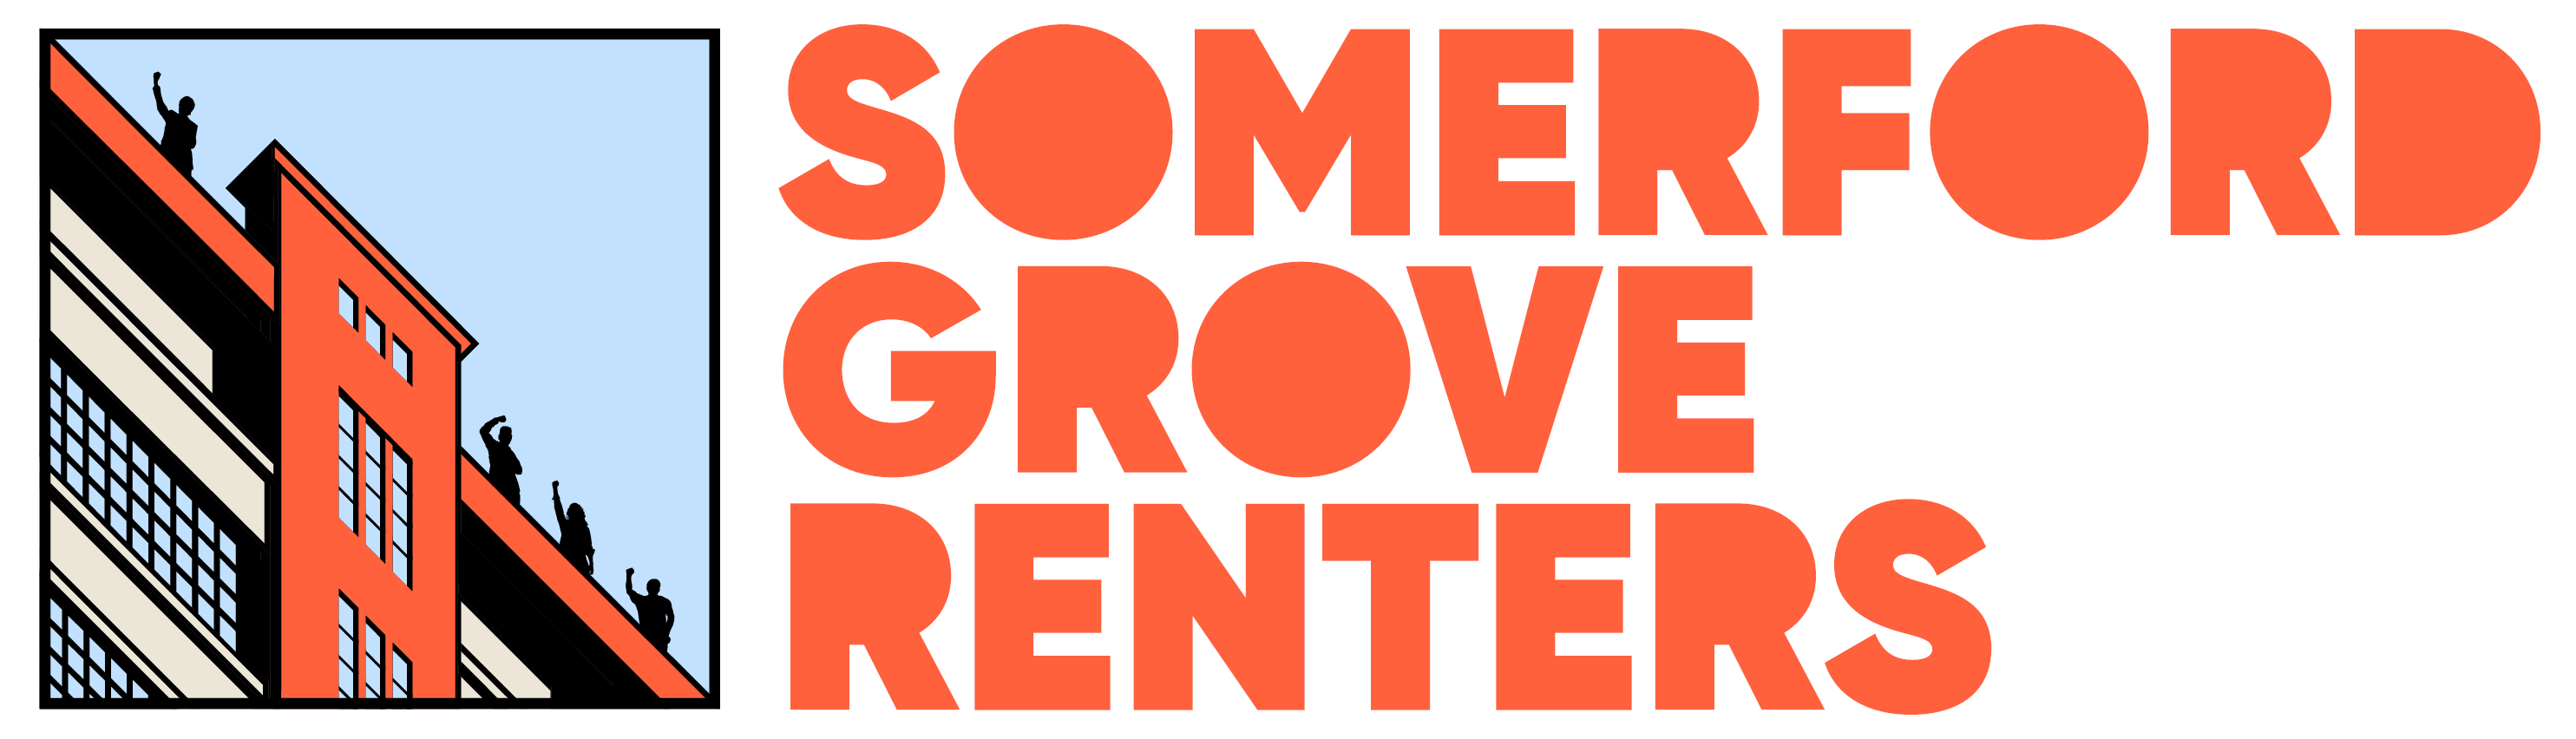 Somerford Grove Renters